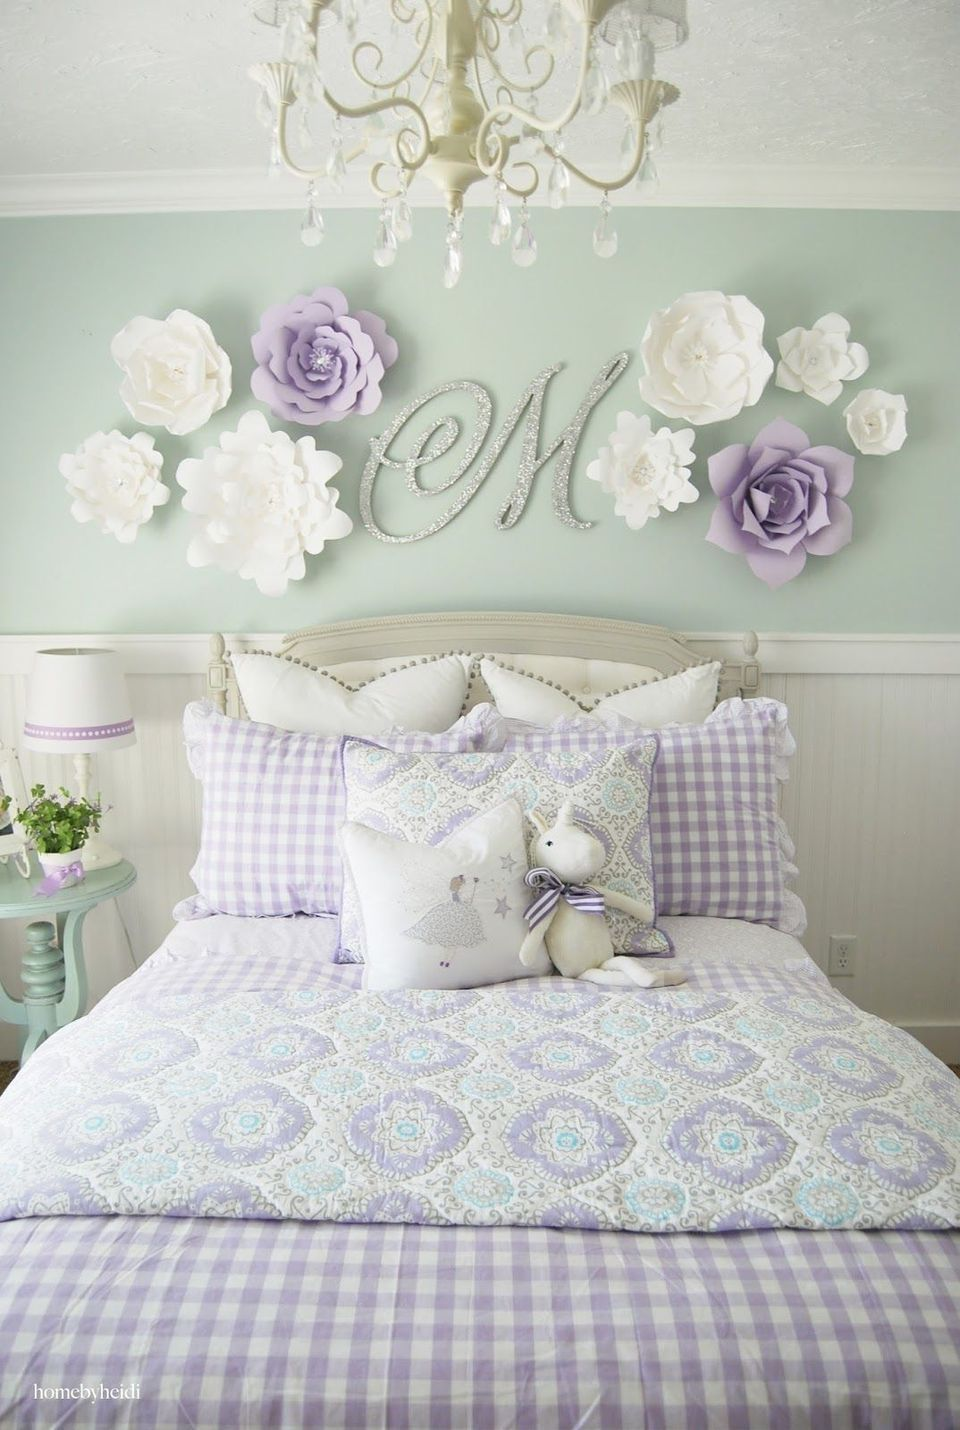 Paper Flower Wall Decor For Girlu0027s Room